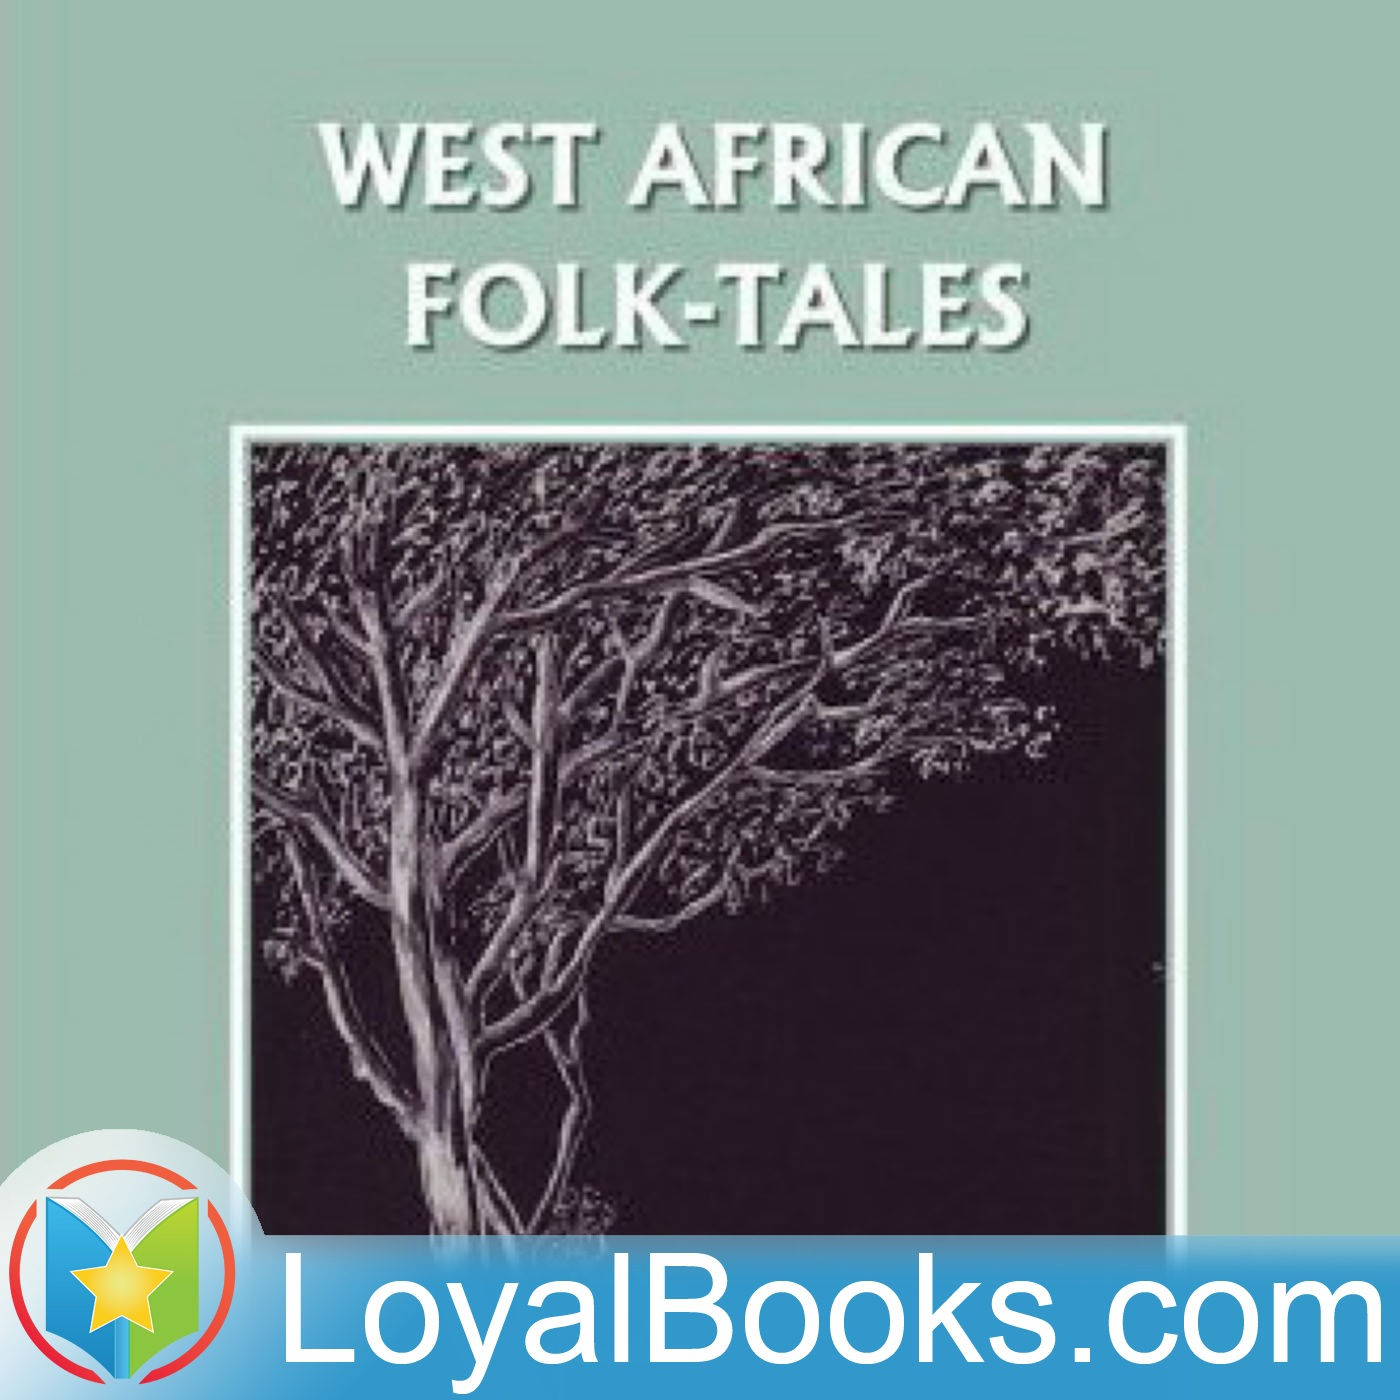 <![CDATA[West African Folk Tales by William H. Barker]]>